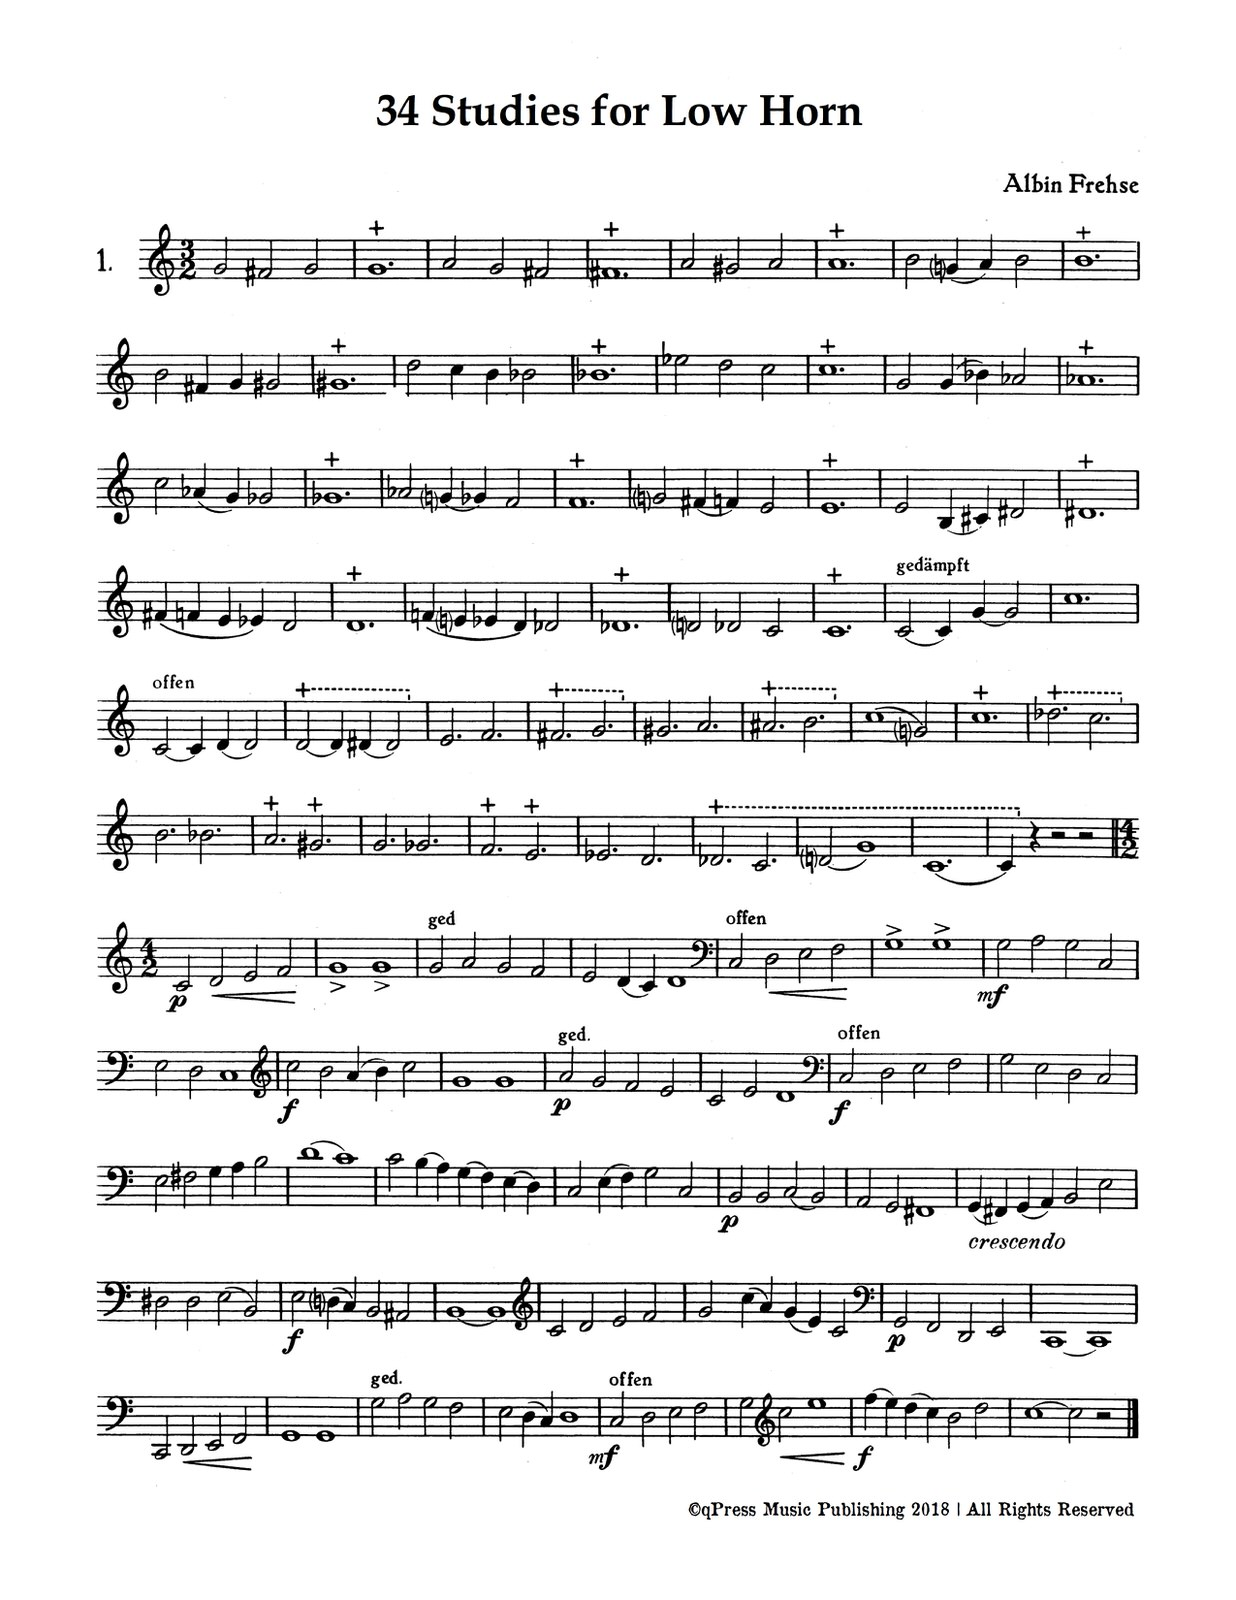 Frehse, 34 Studies for Low Horn-p03